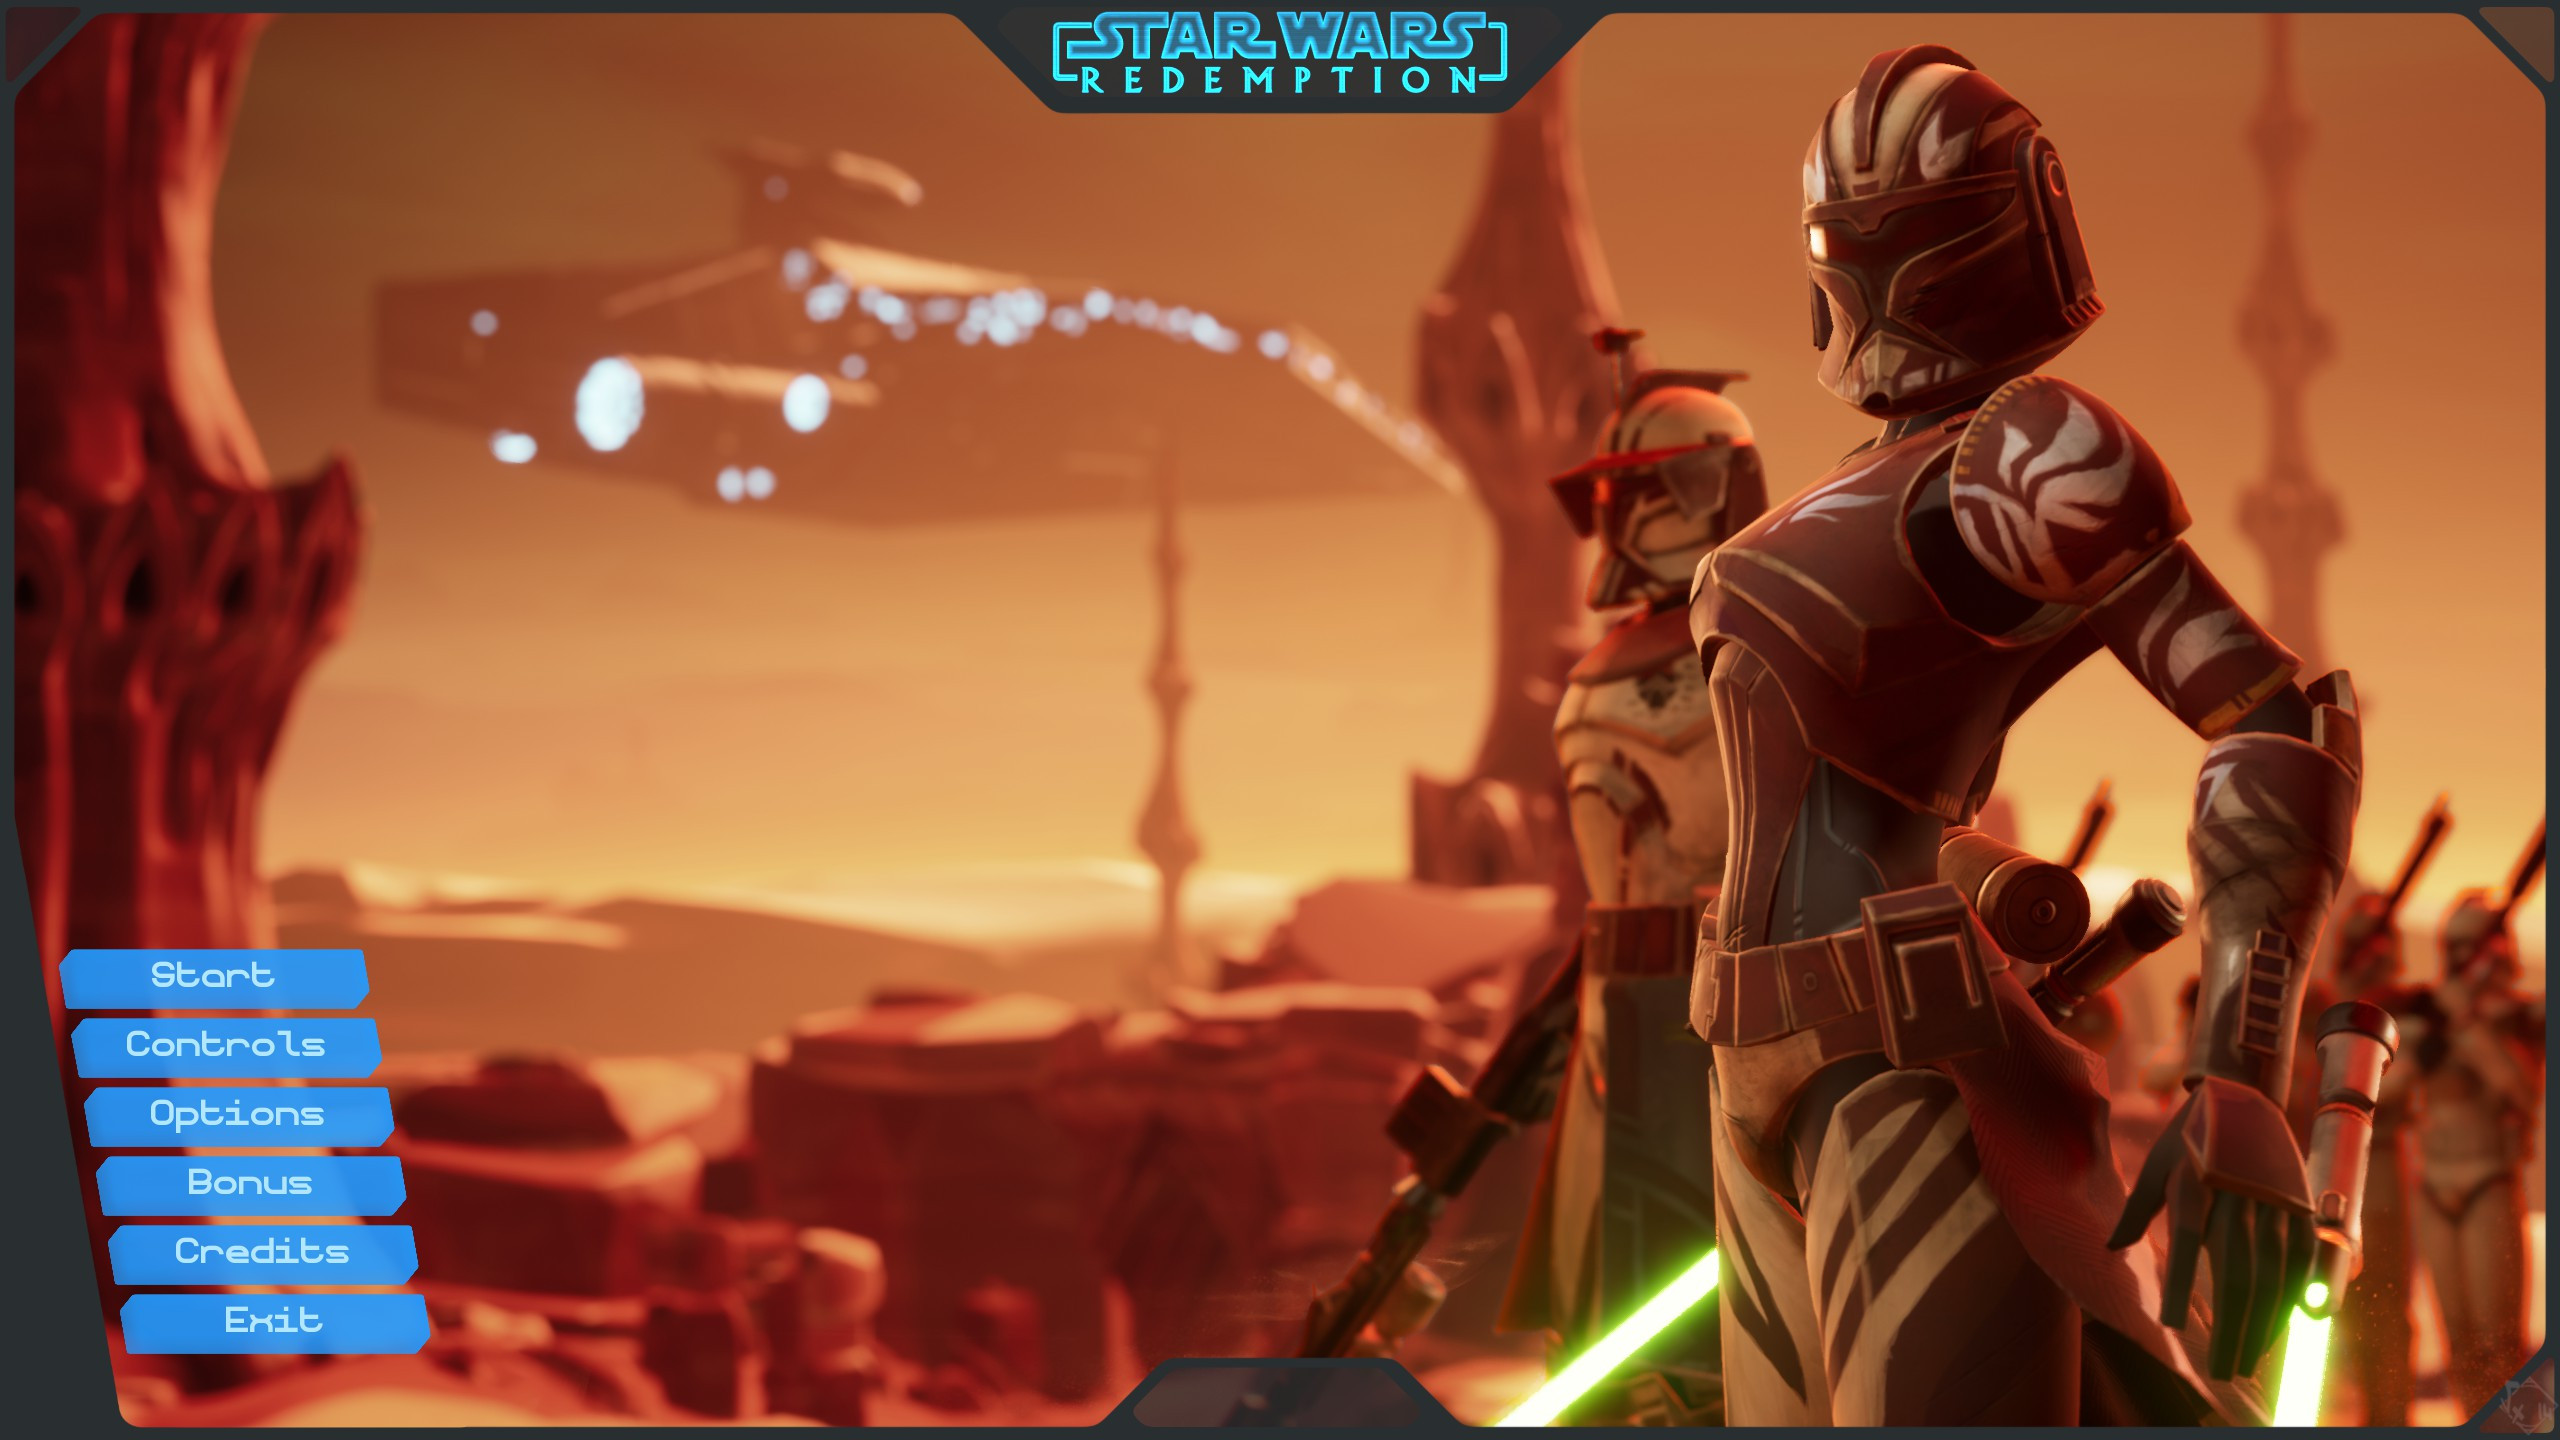 Main Menu using the test level building I did of Geonosis, not playable, but a cool place to start with